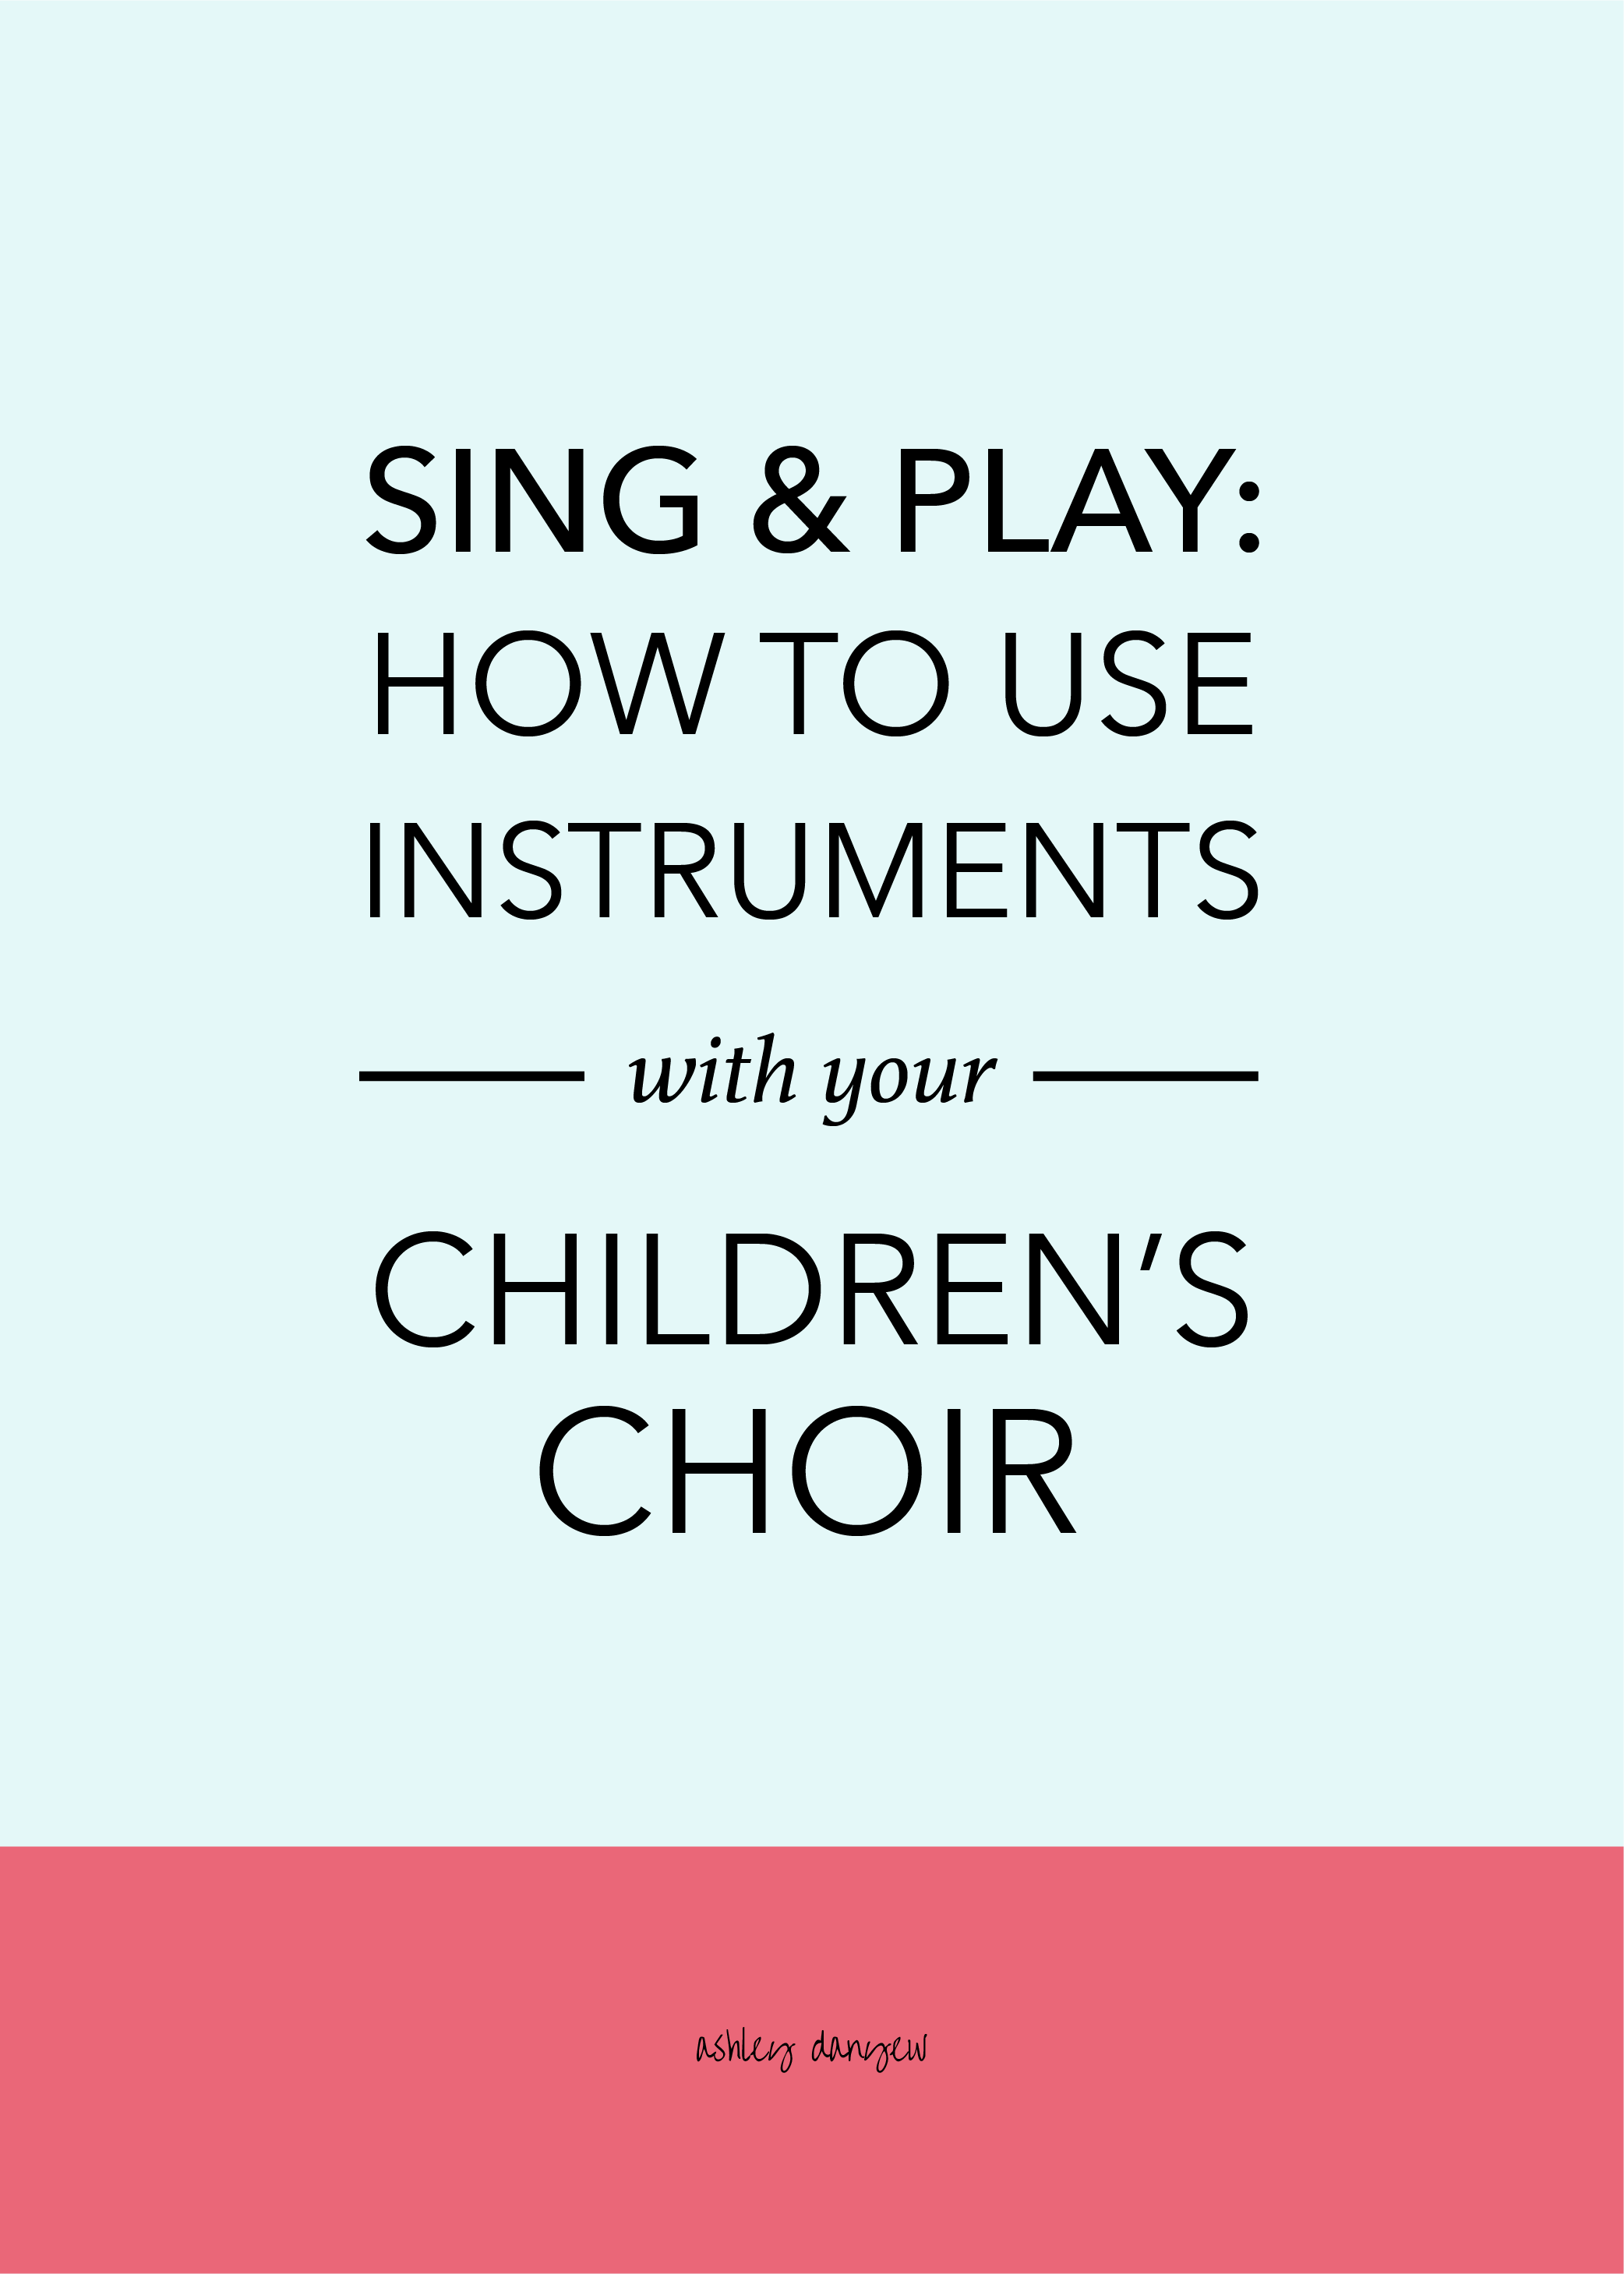 Sing and Play - How to Use Instruments with Your Children's Choir-02.png